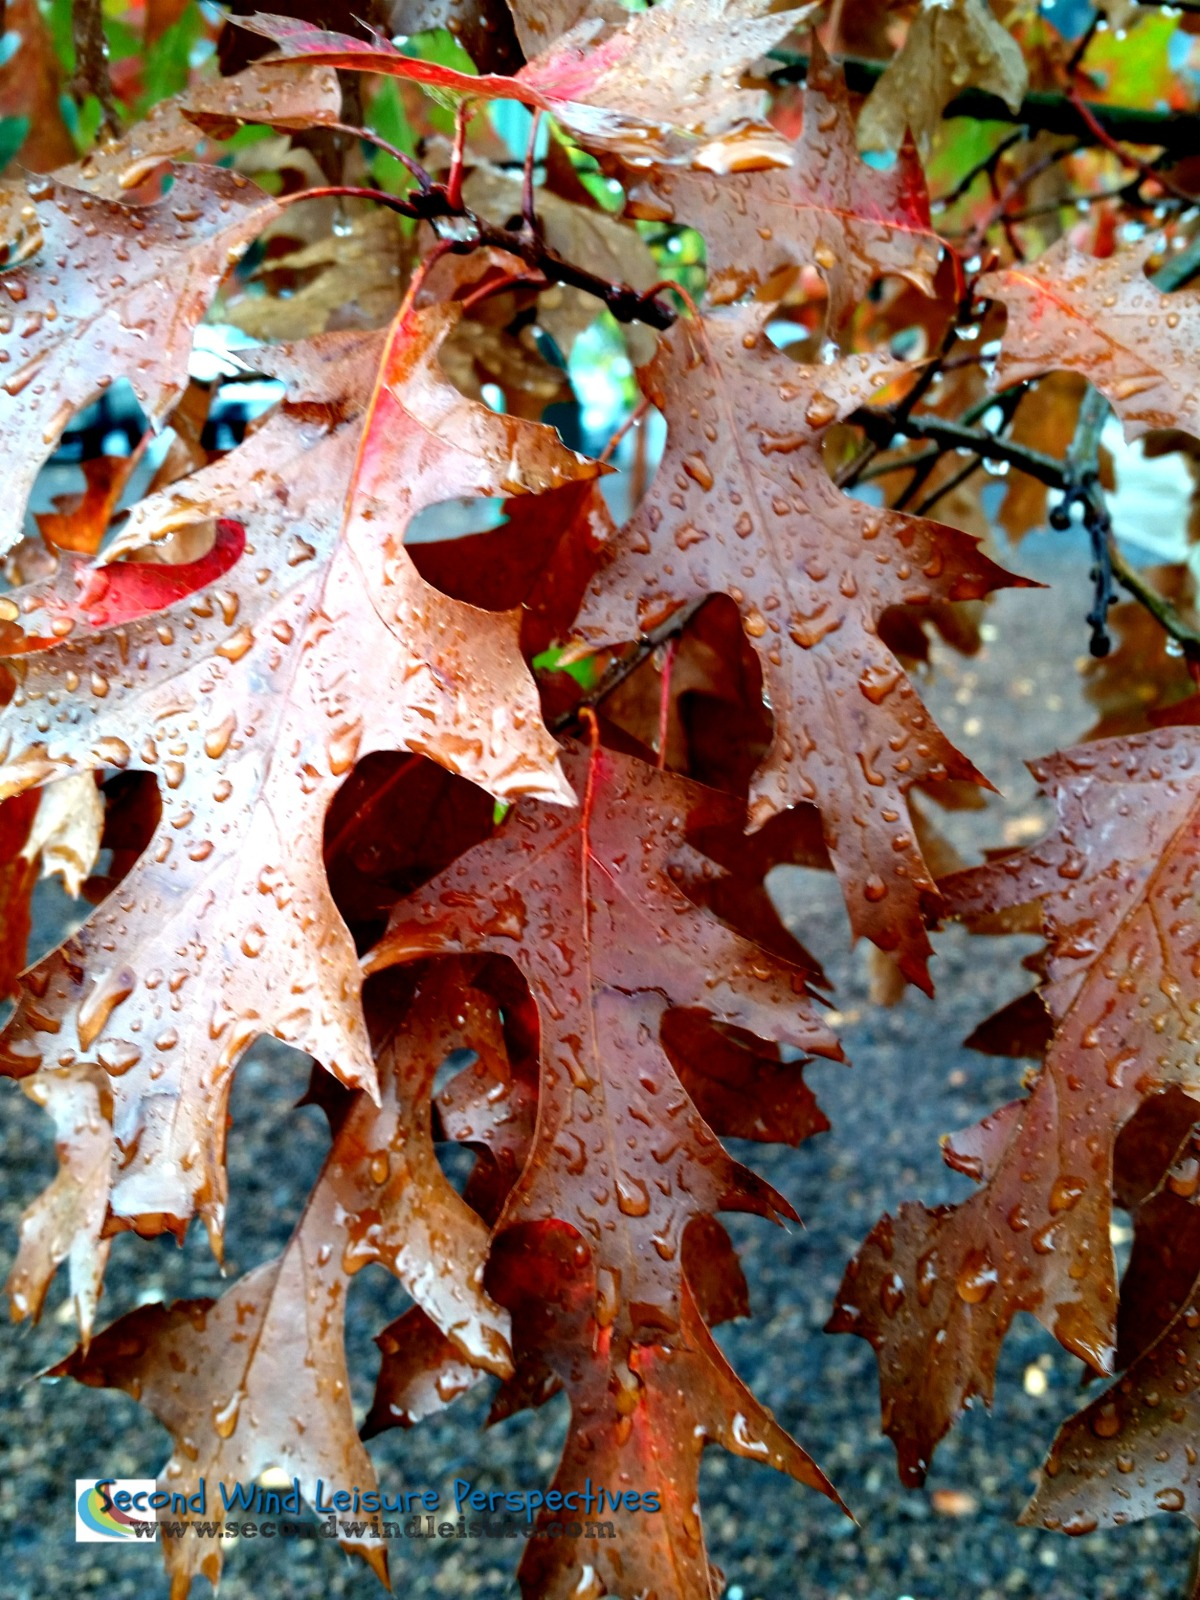 Layers of drops on layers of leaves